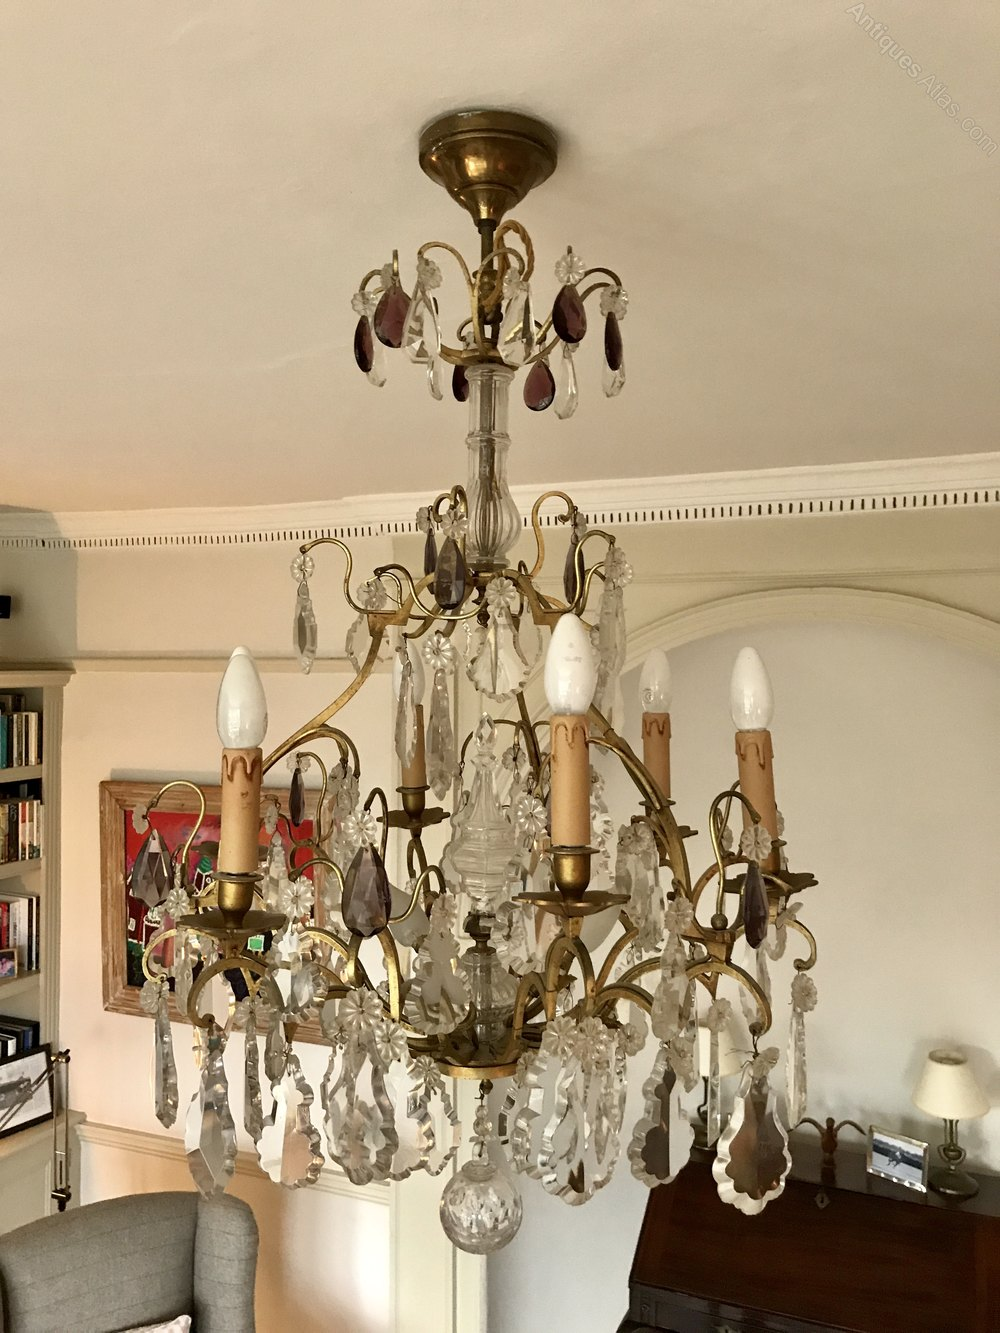 French chandeliers flemish chandeliers this is a excellent quality antique french chandelier the frame retains its original gilding and holds the original good quality crystal drops aloadofball Choice Image